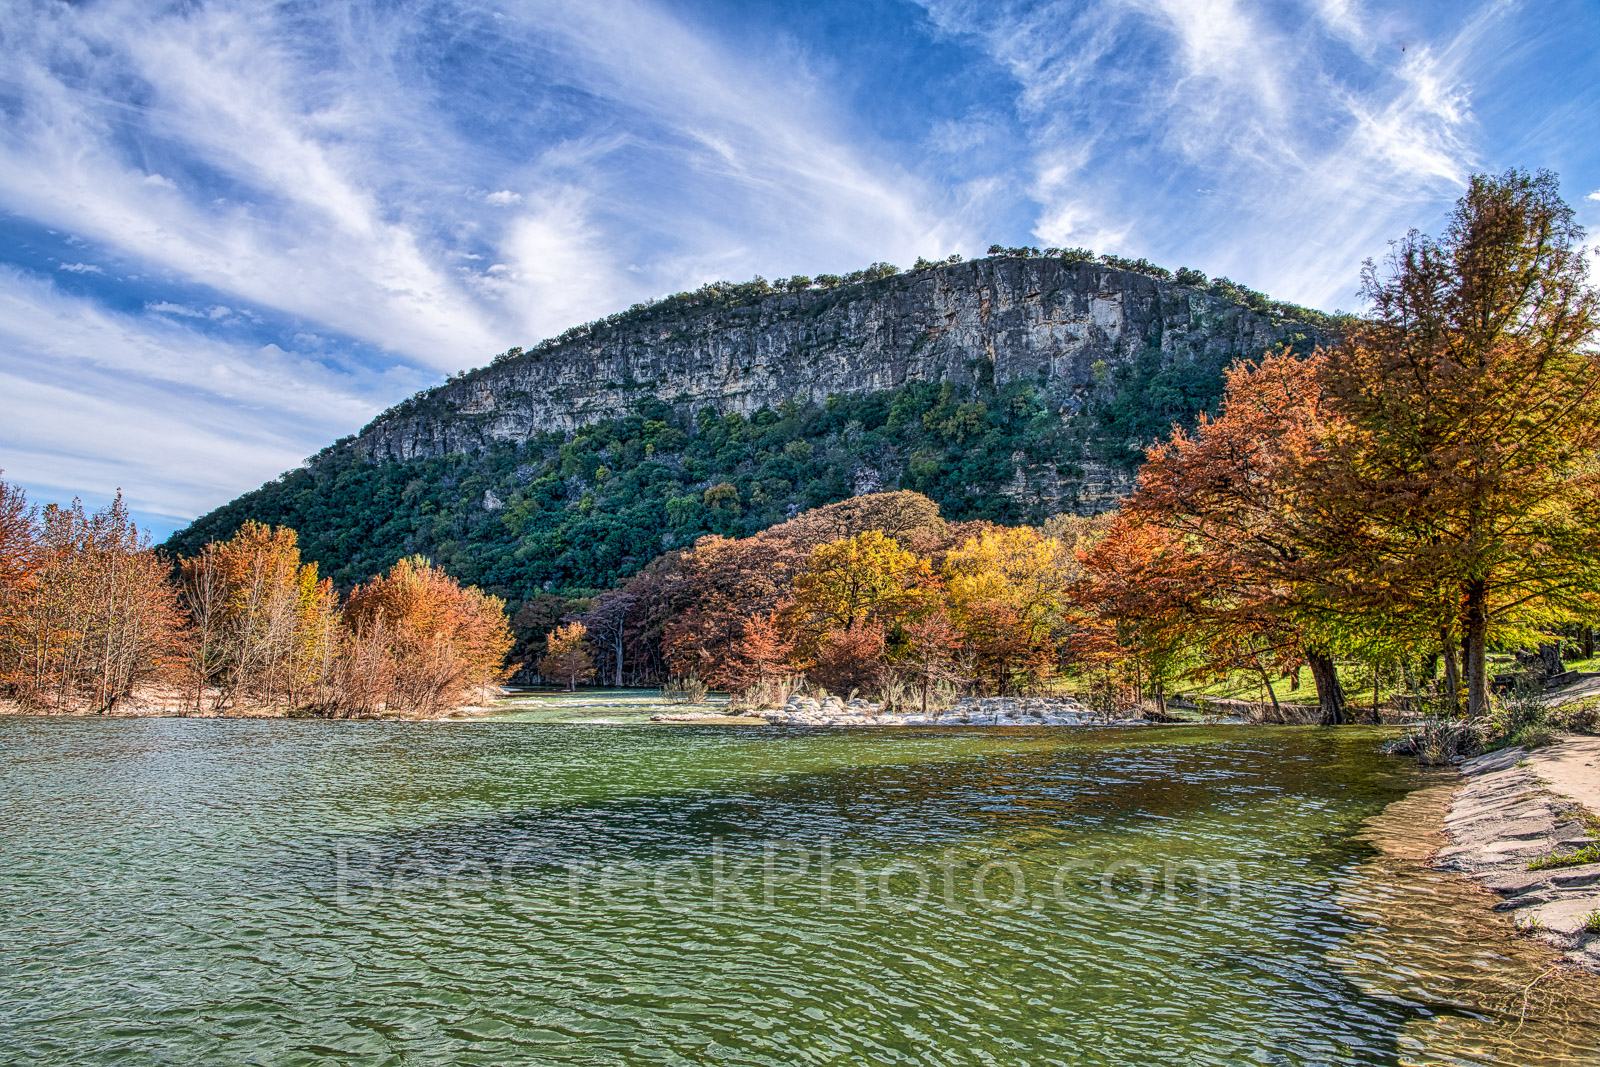 Fall, autumn, colors, Garner State Park, Texas landscape, canvas, prints, Texas hill country, trees, maples, cypress trees, old baldy, downstream, dam, rocks, fall landscapes, , photo